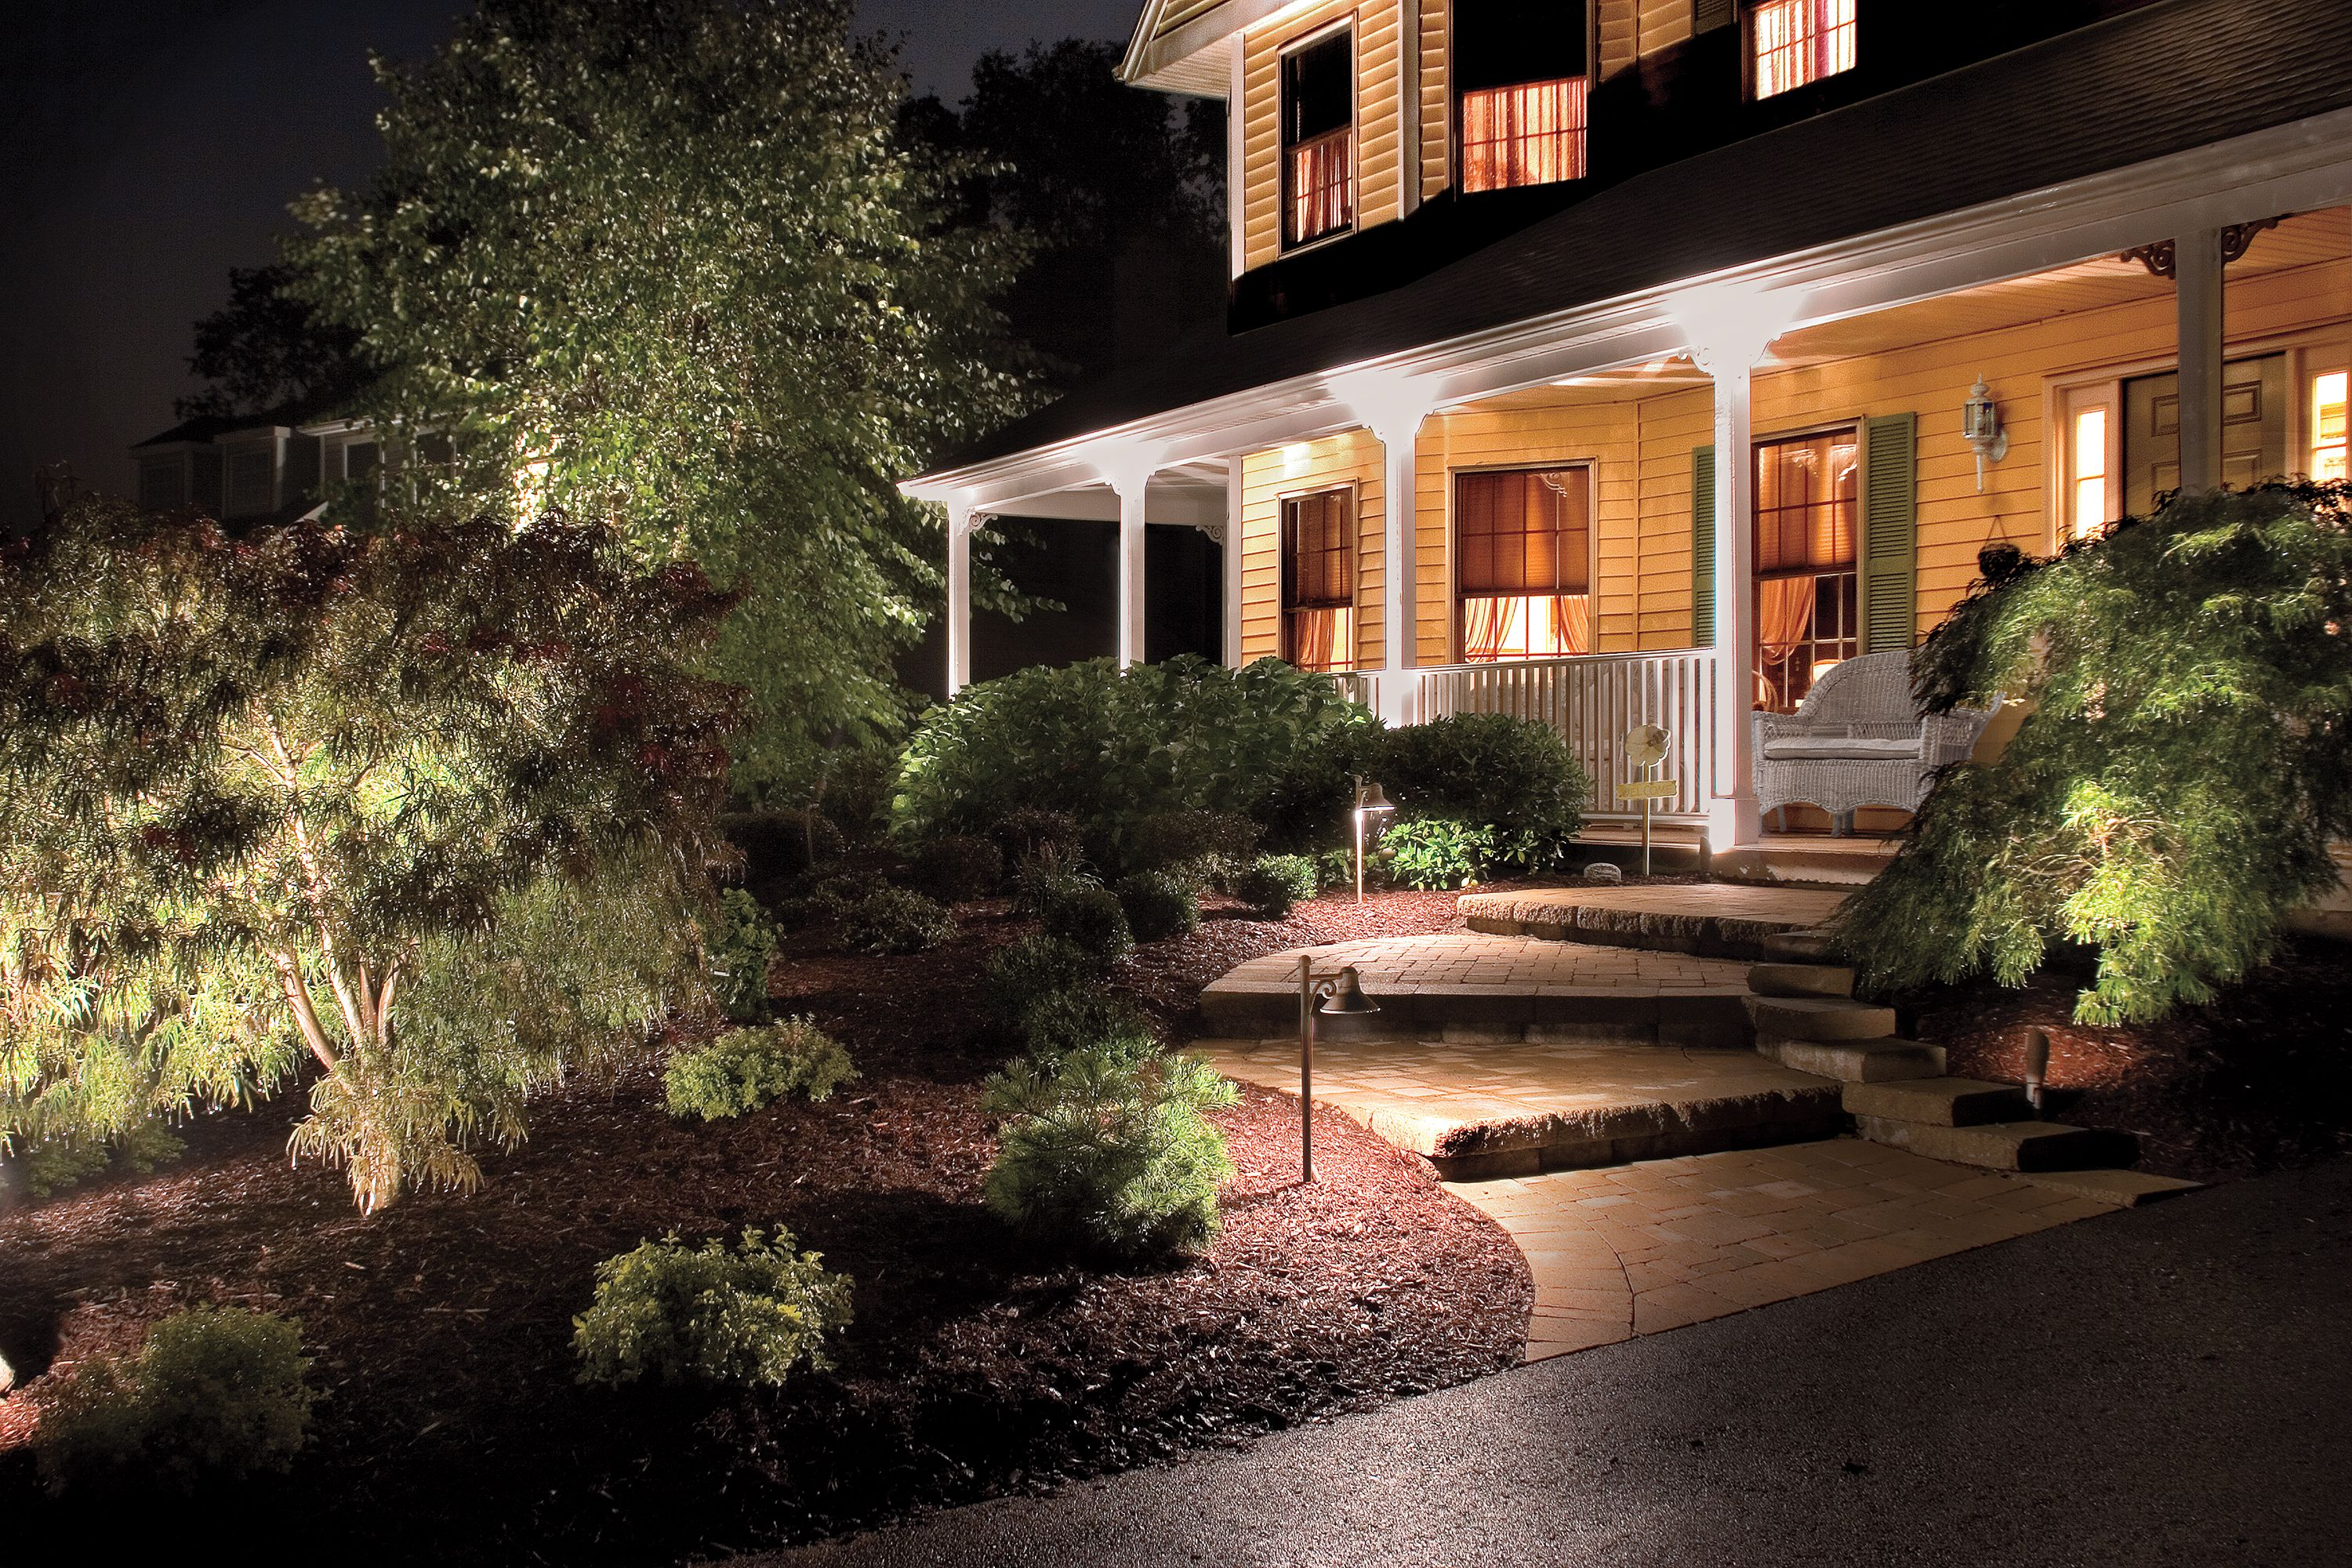 com path count dp garden amazon outdoor lights lumabase light pathway clear electric string